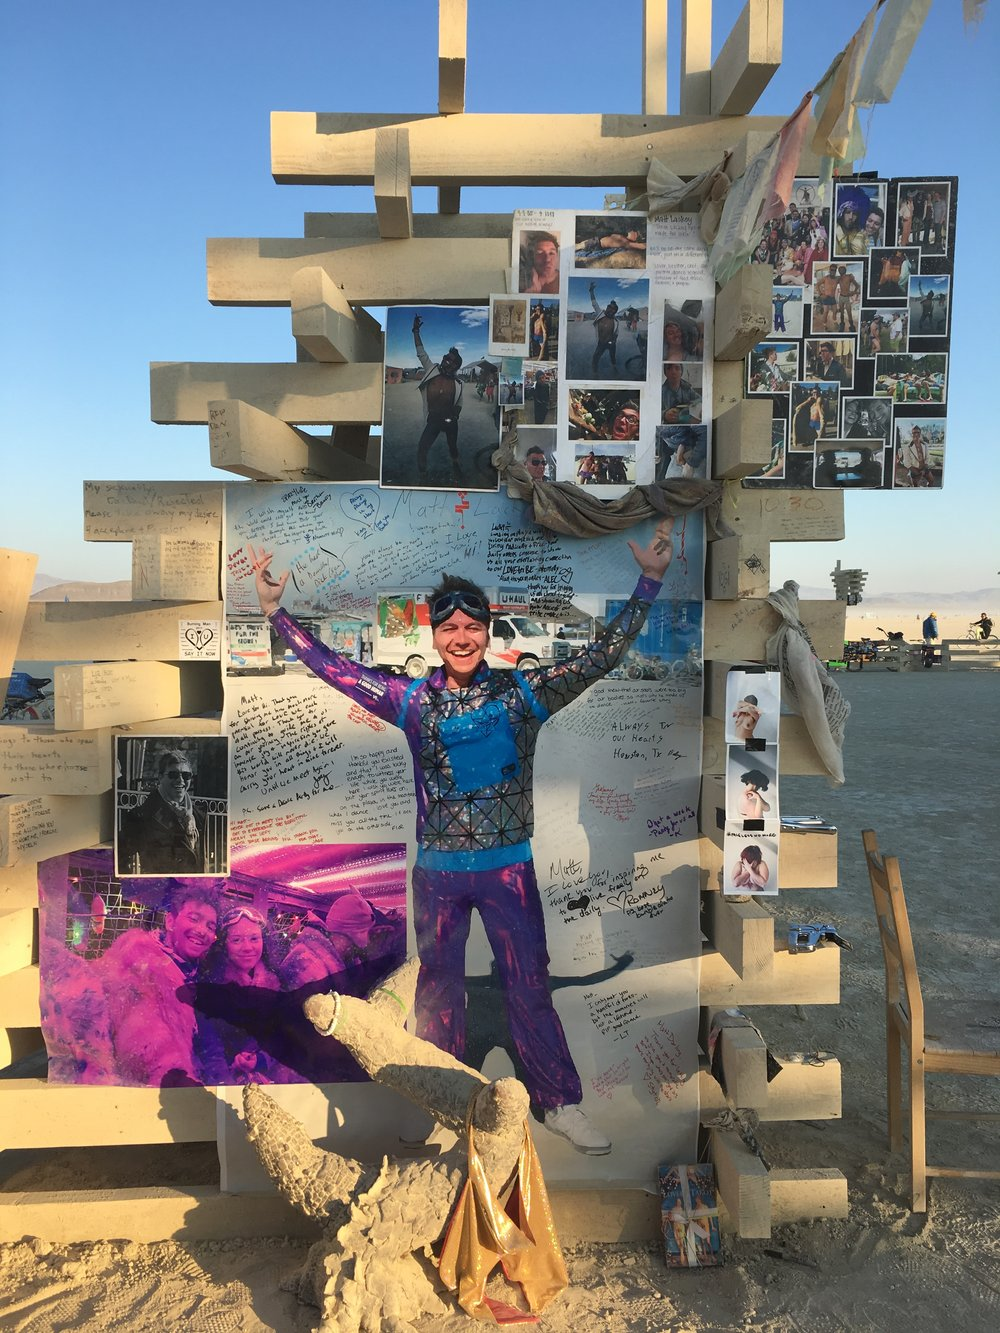 Entrance to the Temple, Burning Man 2017. Matthew Wayne Lackey.